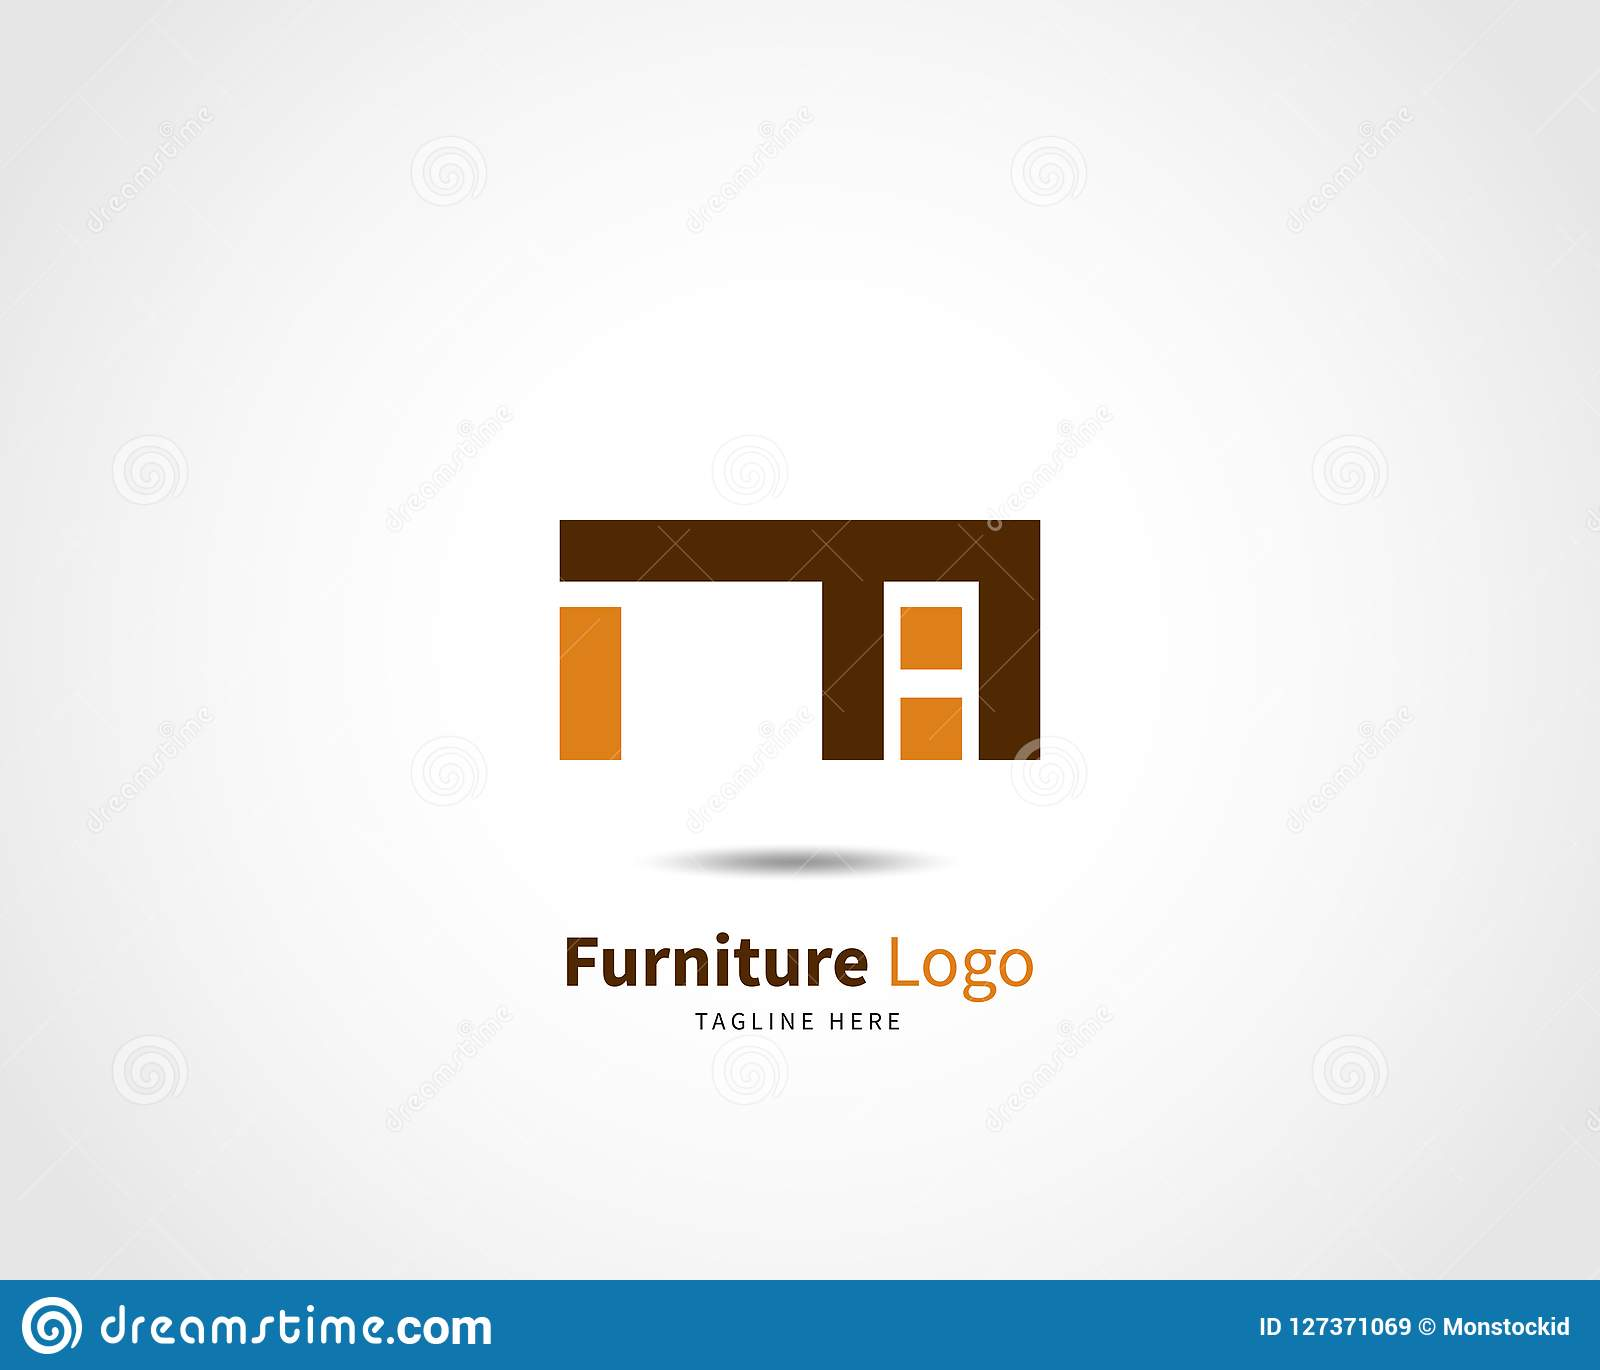 Modern Furniture Logo Design